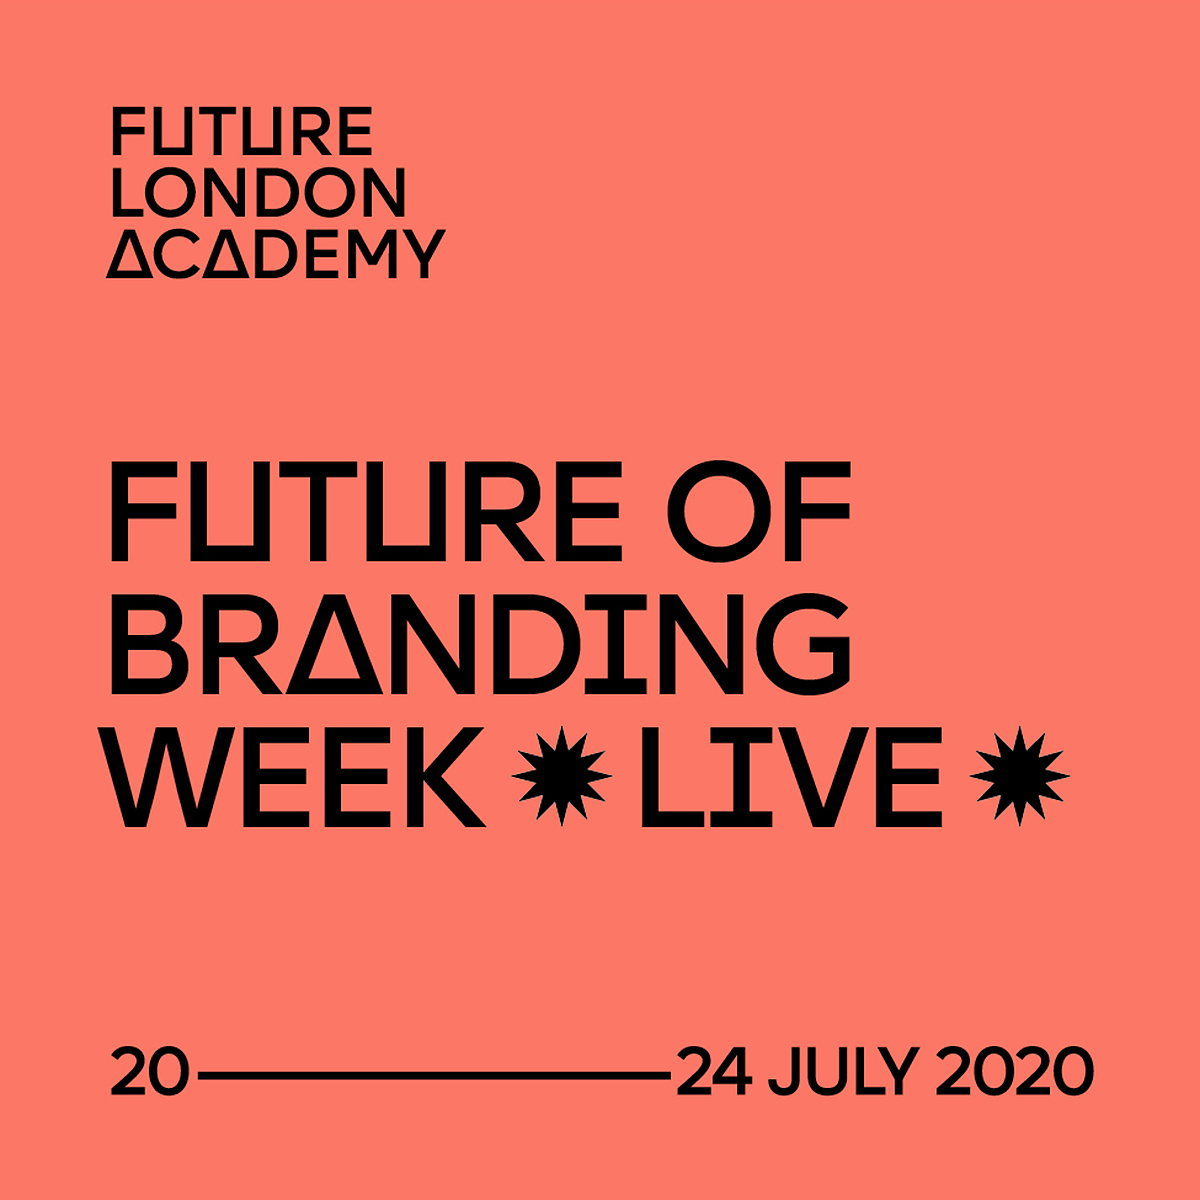 Future of Branding Week LIVE